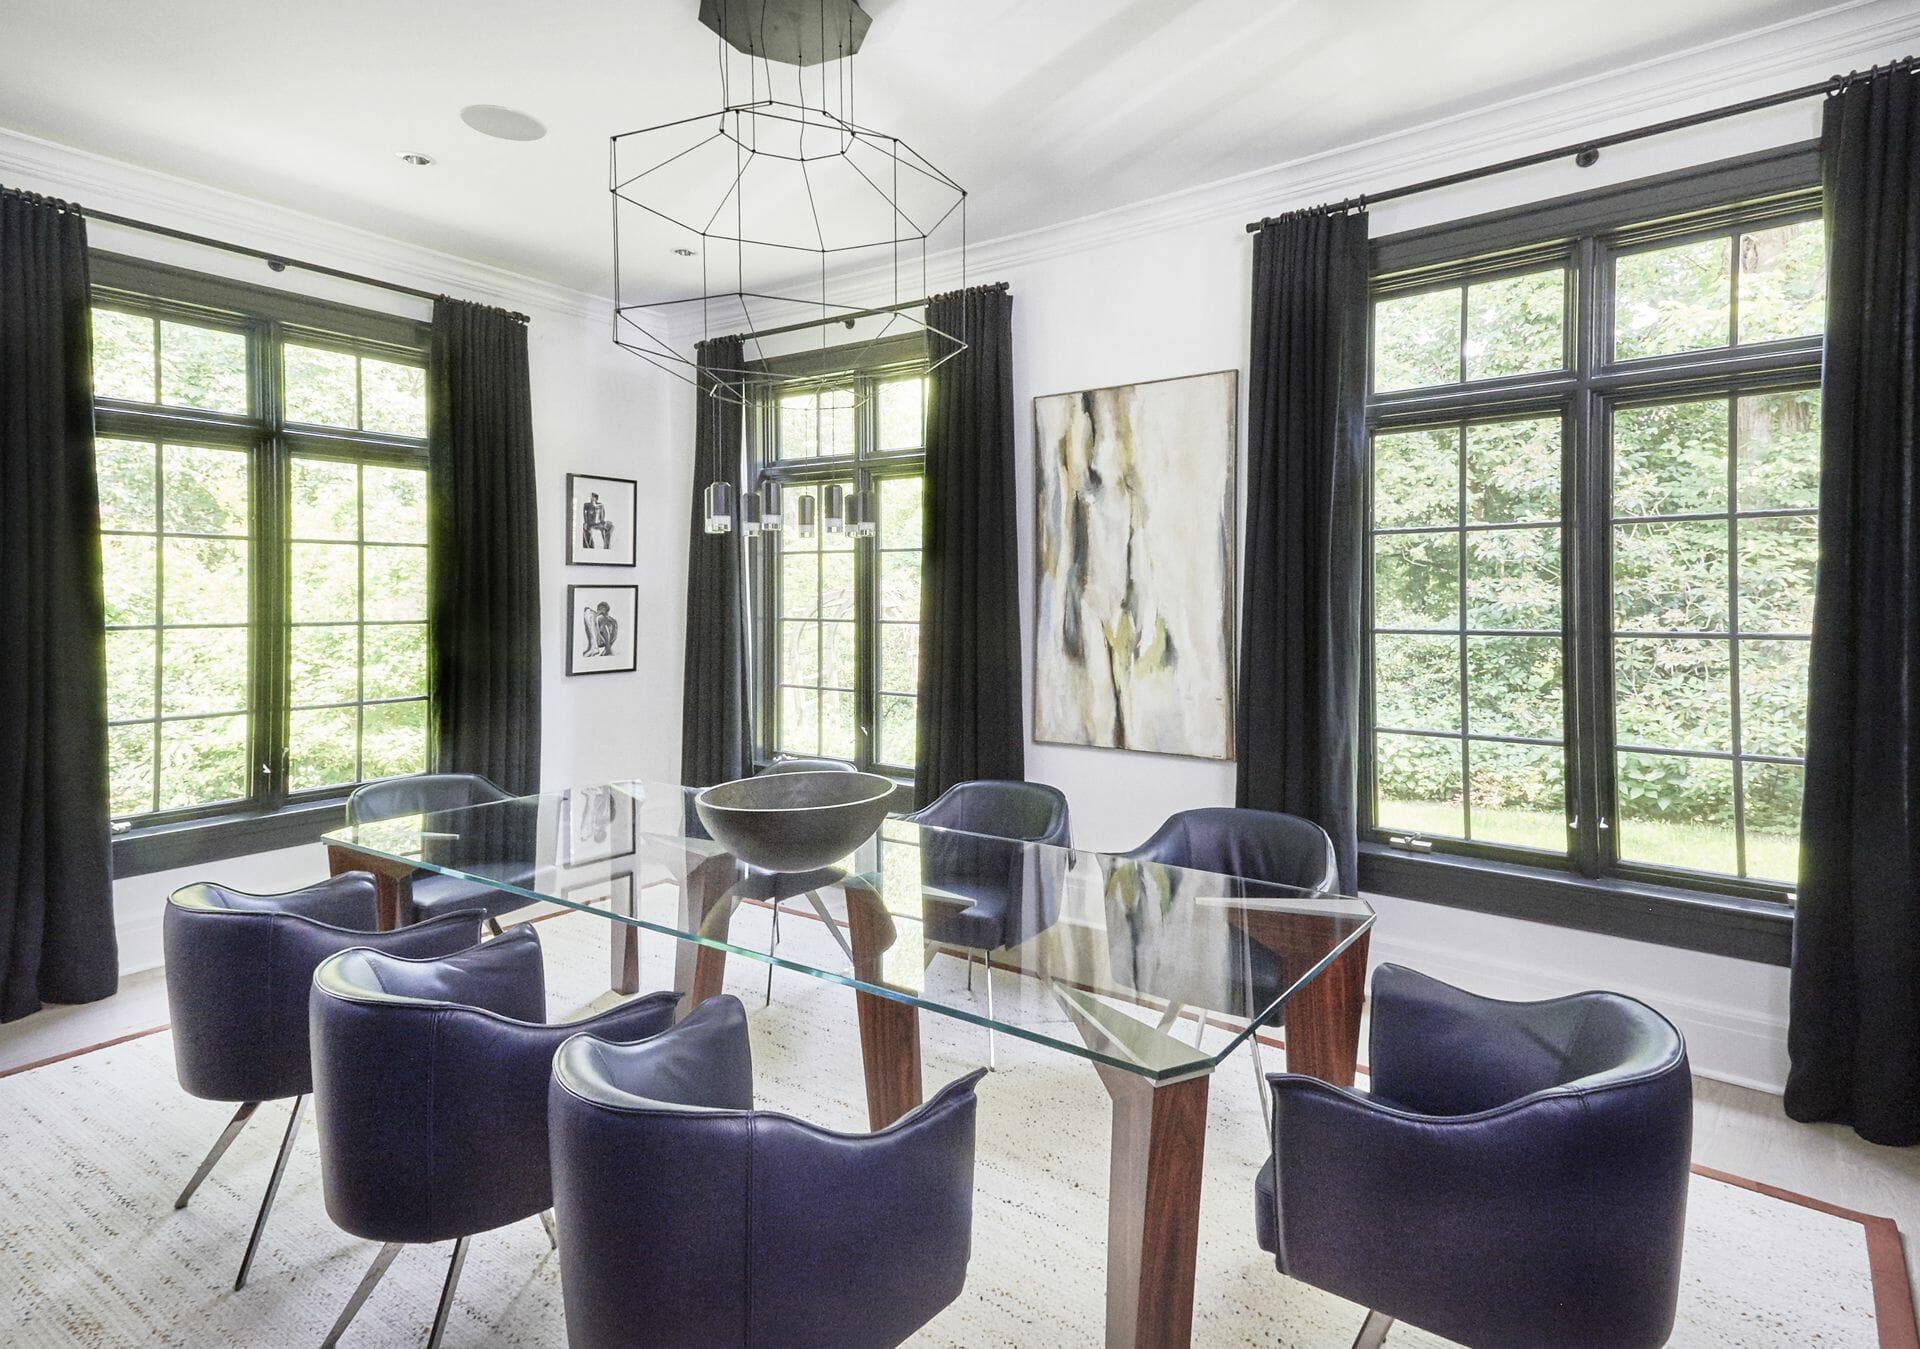 Connecticut Home Is Transformed — With an Edge